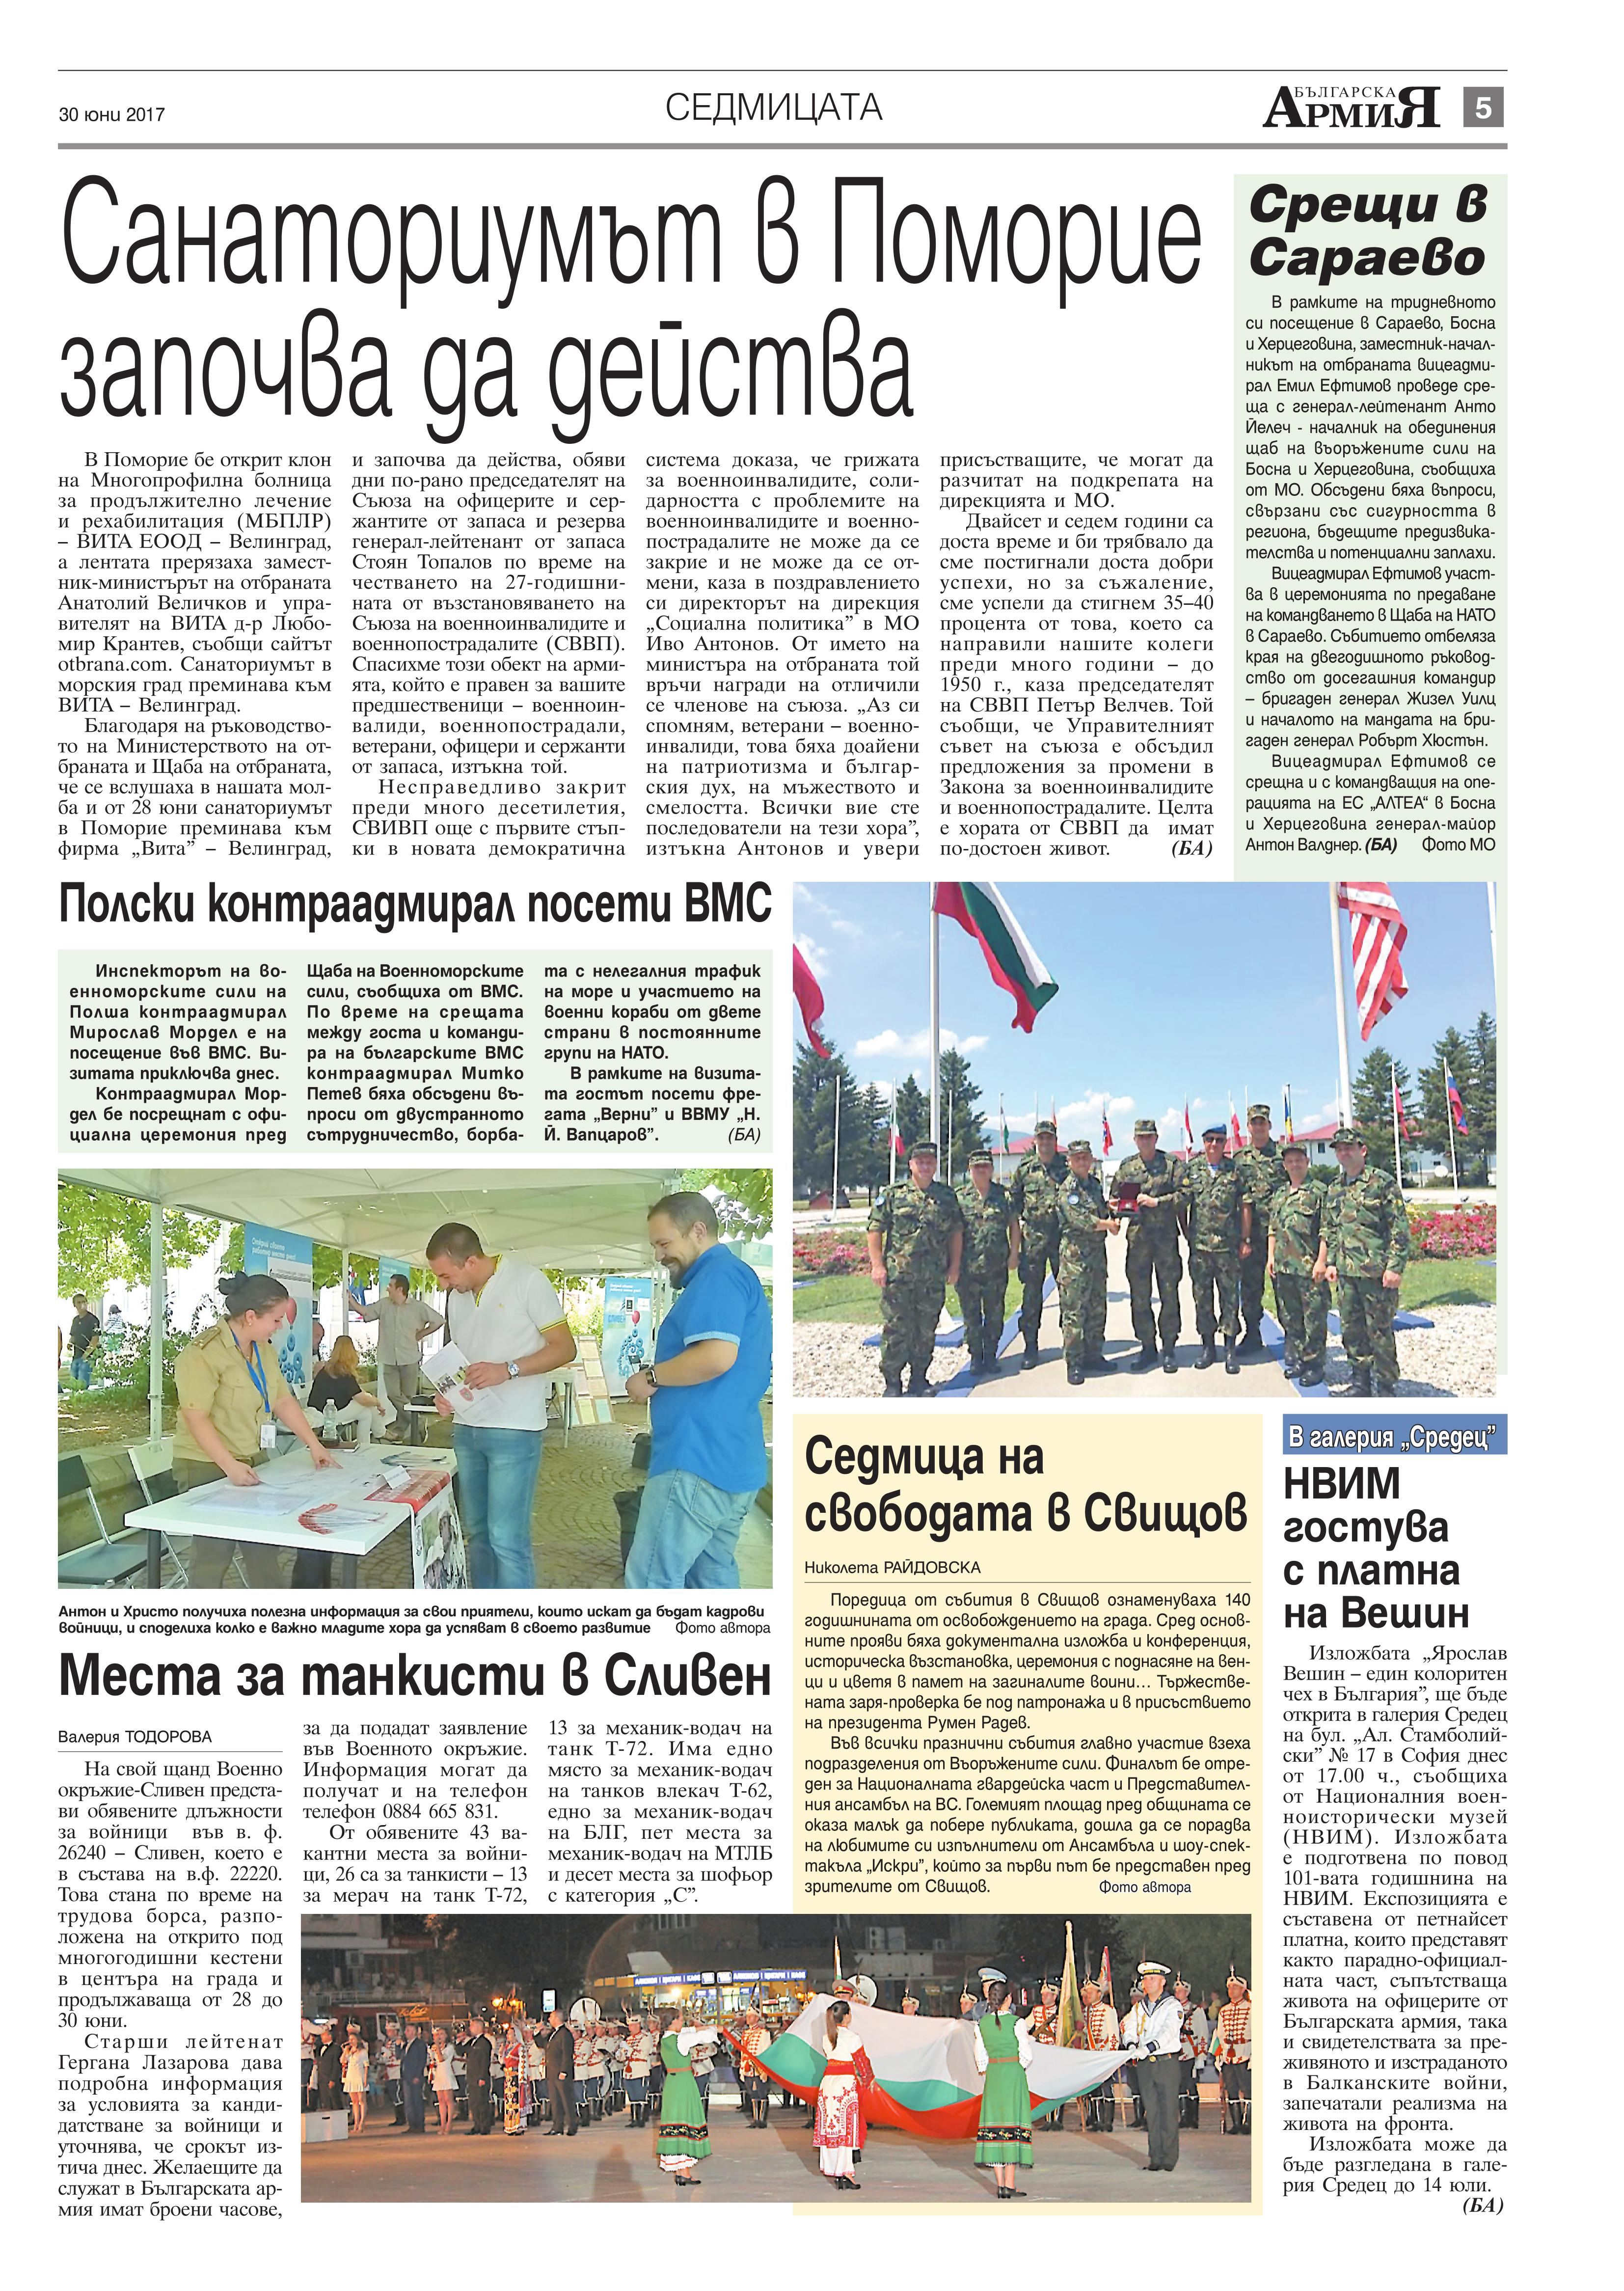 https://www.armymedia.bg/wp-content/uploads/2015/06/05.page1_-23.jpg